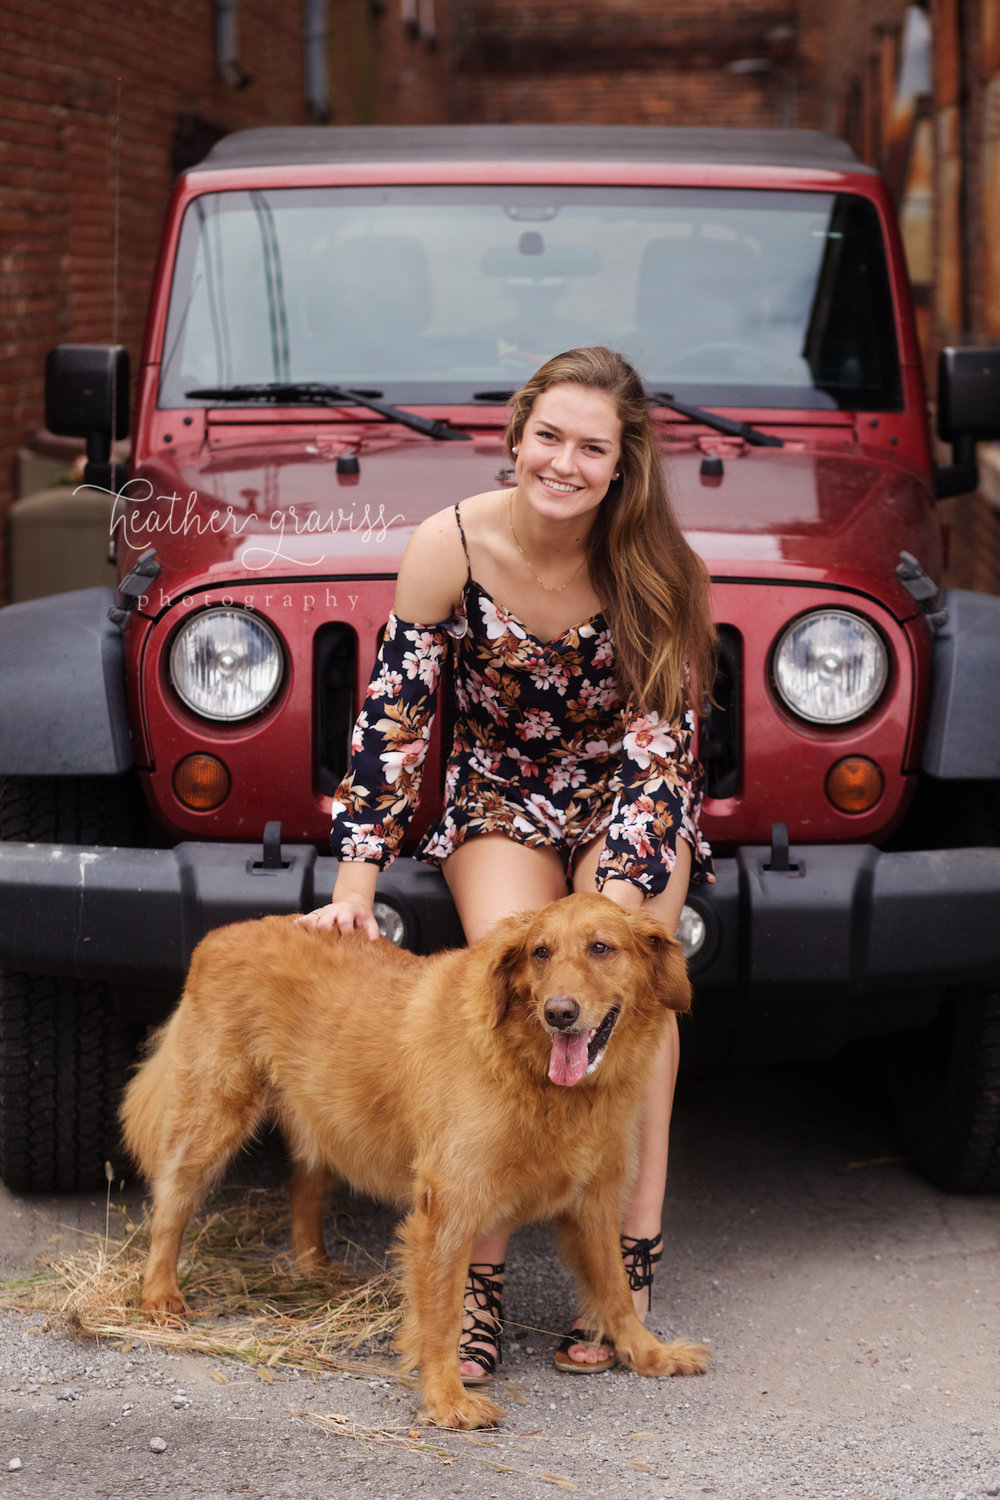 1senior-with-jeep-and-dog.jpg